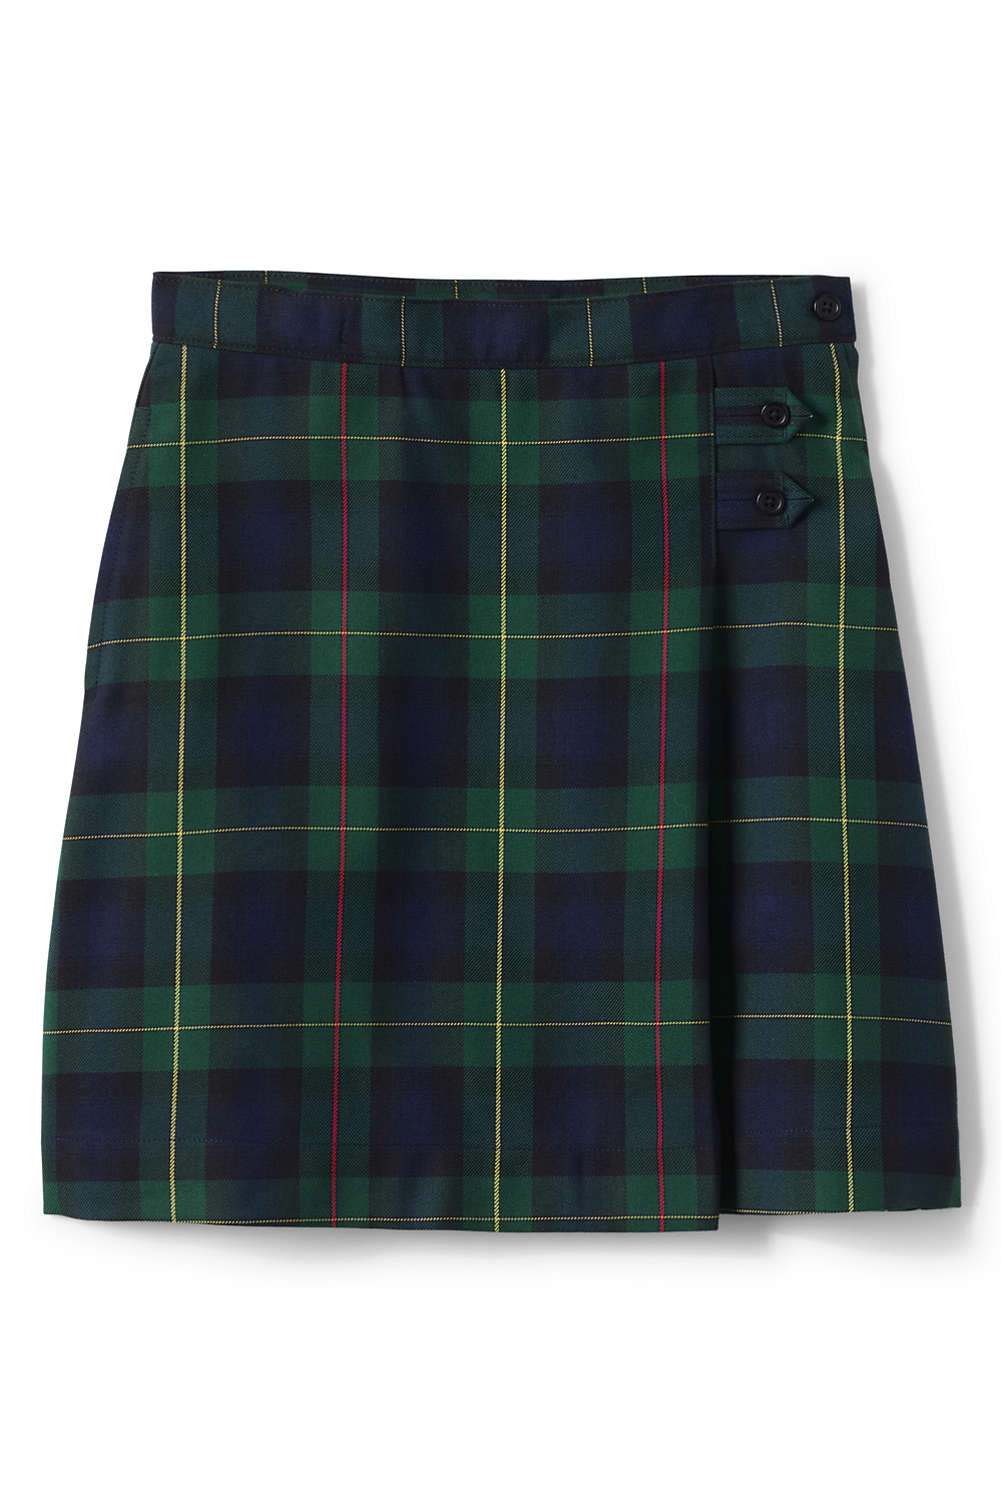 583635646c School Uniform Plaid A-line Skirt Below the Knee from Lands' End